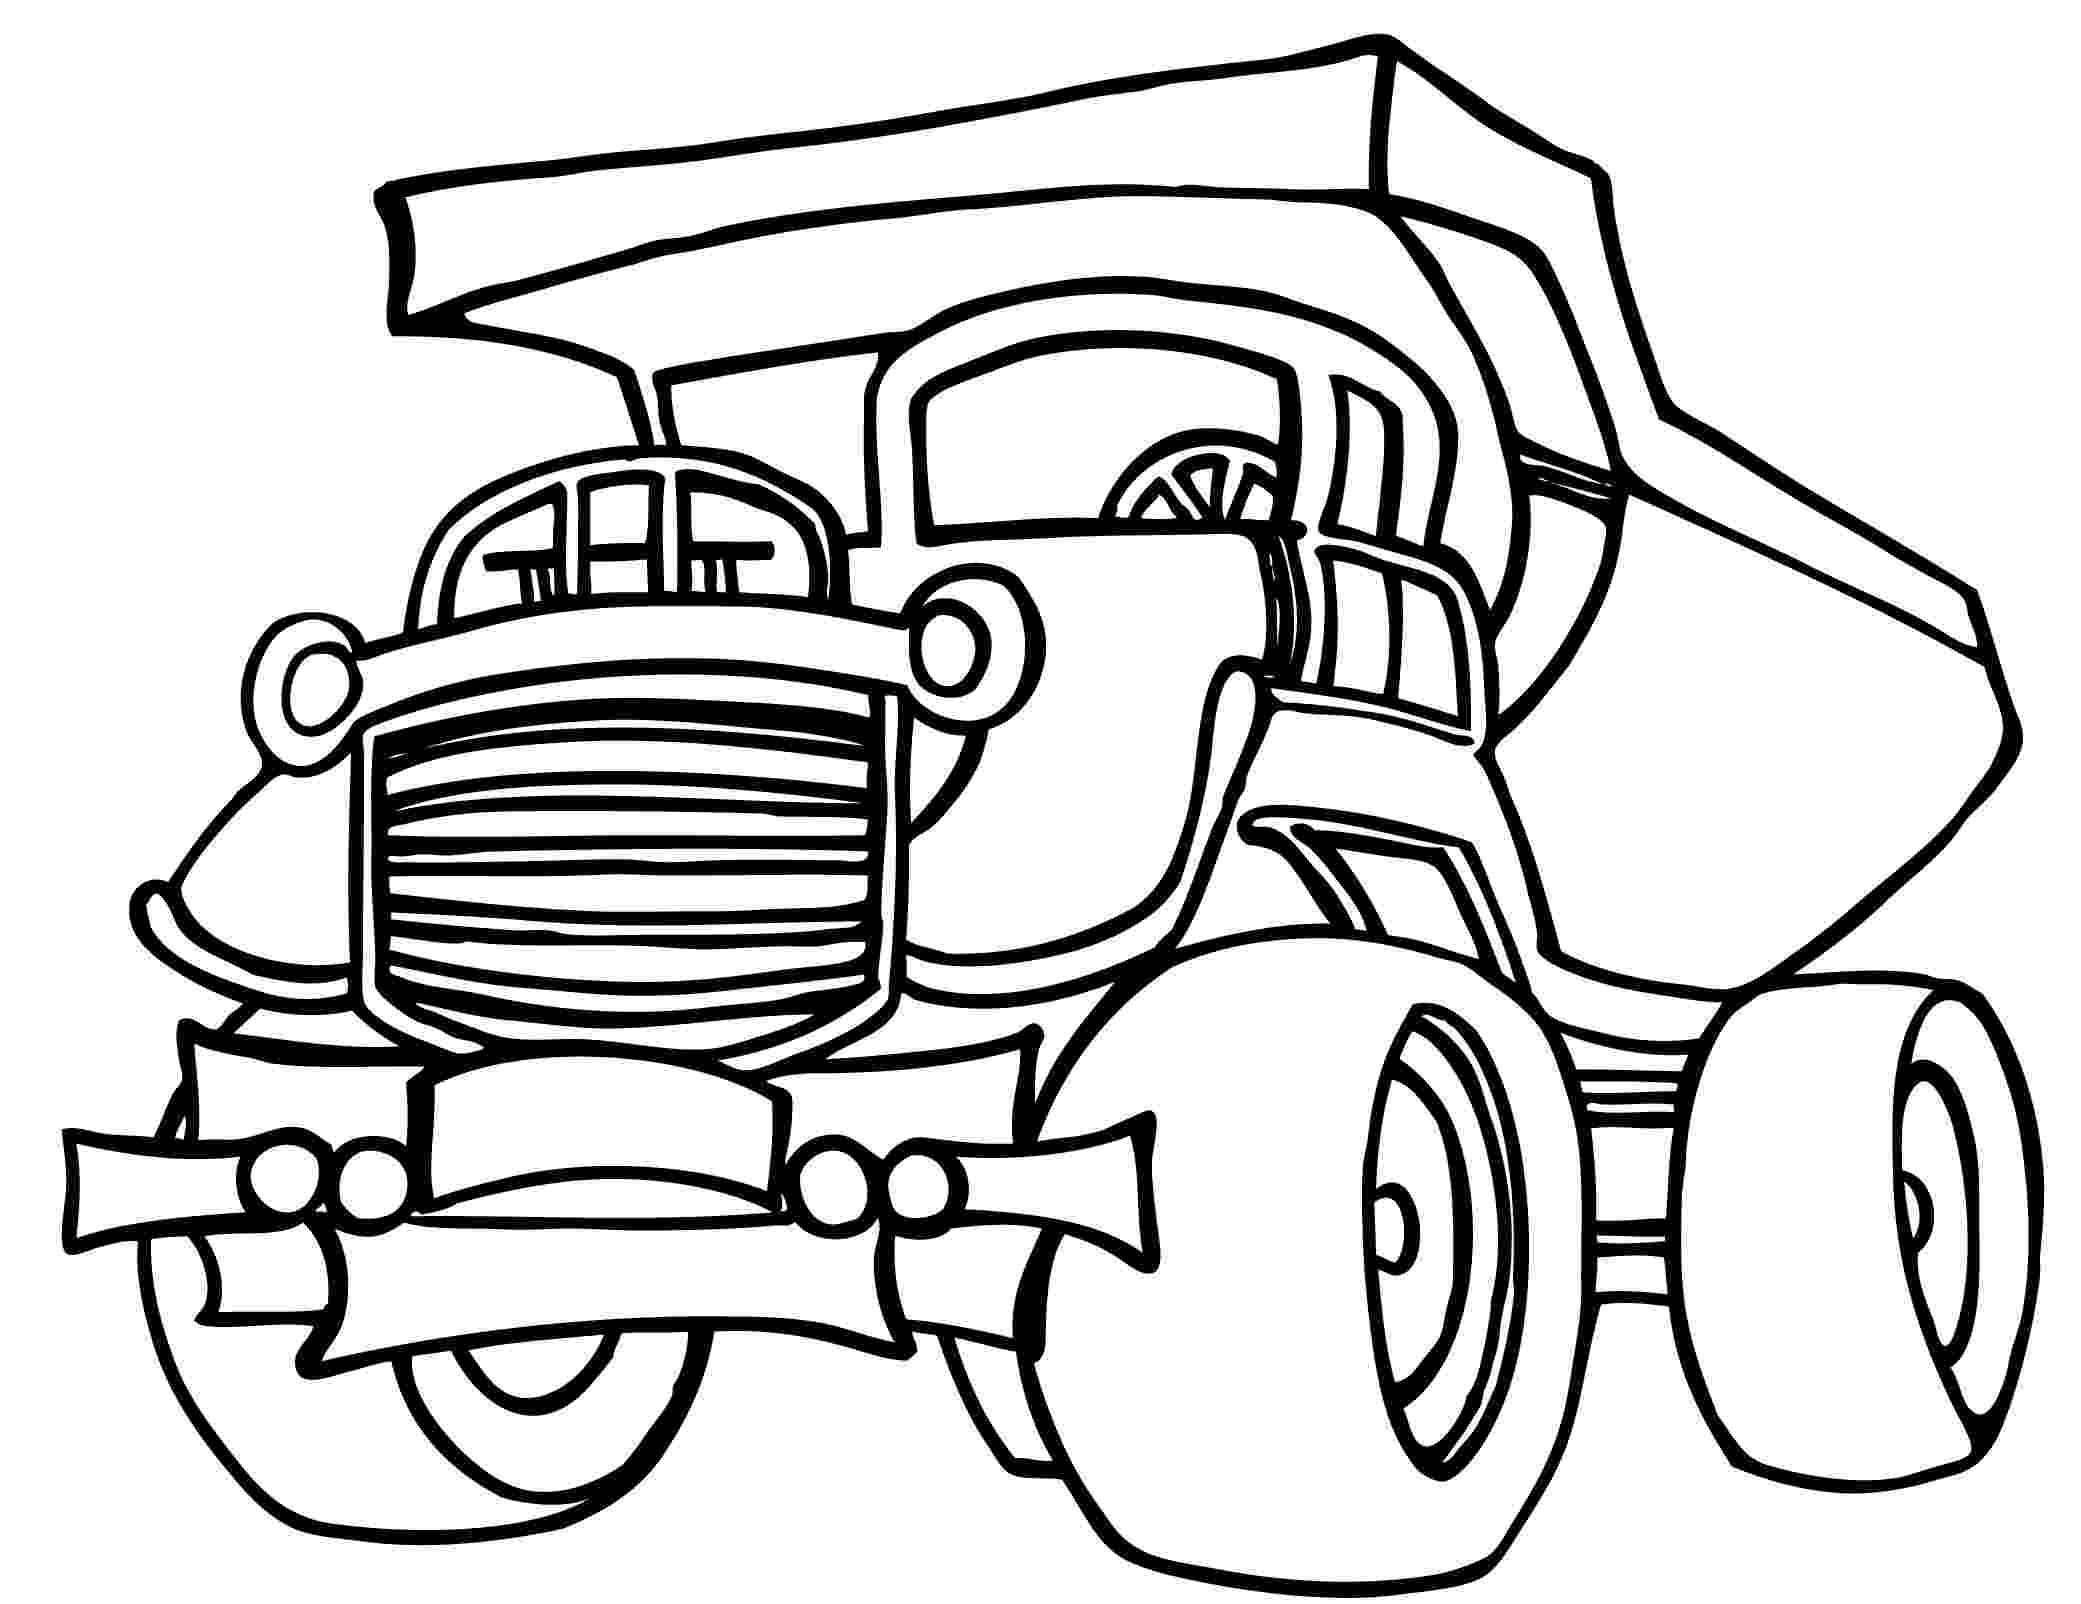 dump truck coloring page printable dump truck coloring pages for kids cool2bkids page dump truck coloring